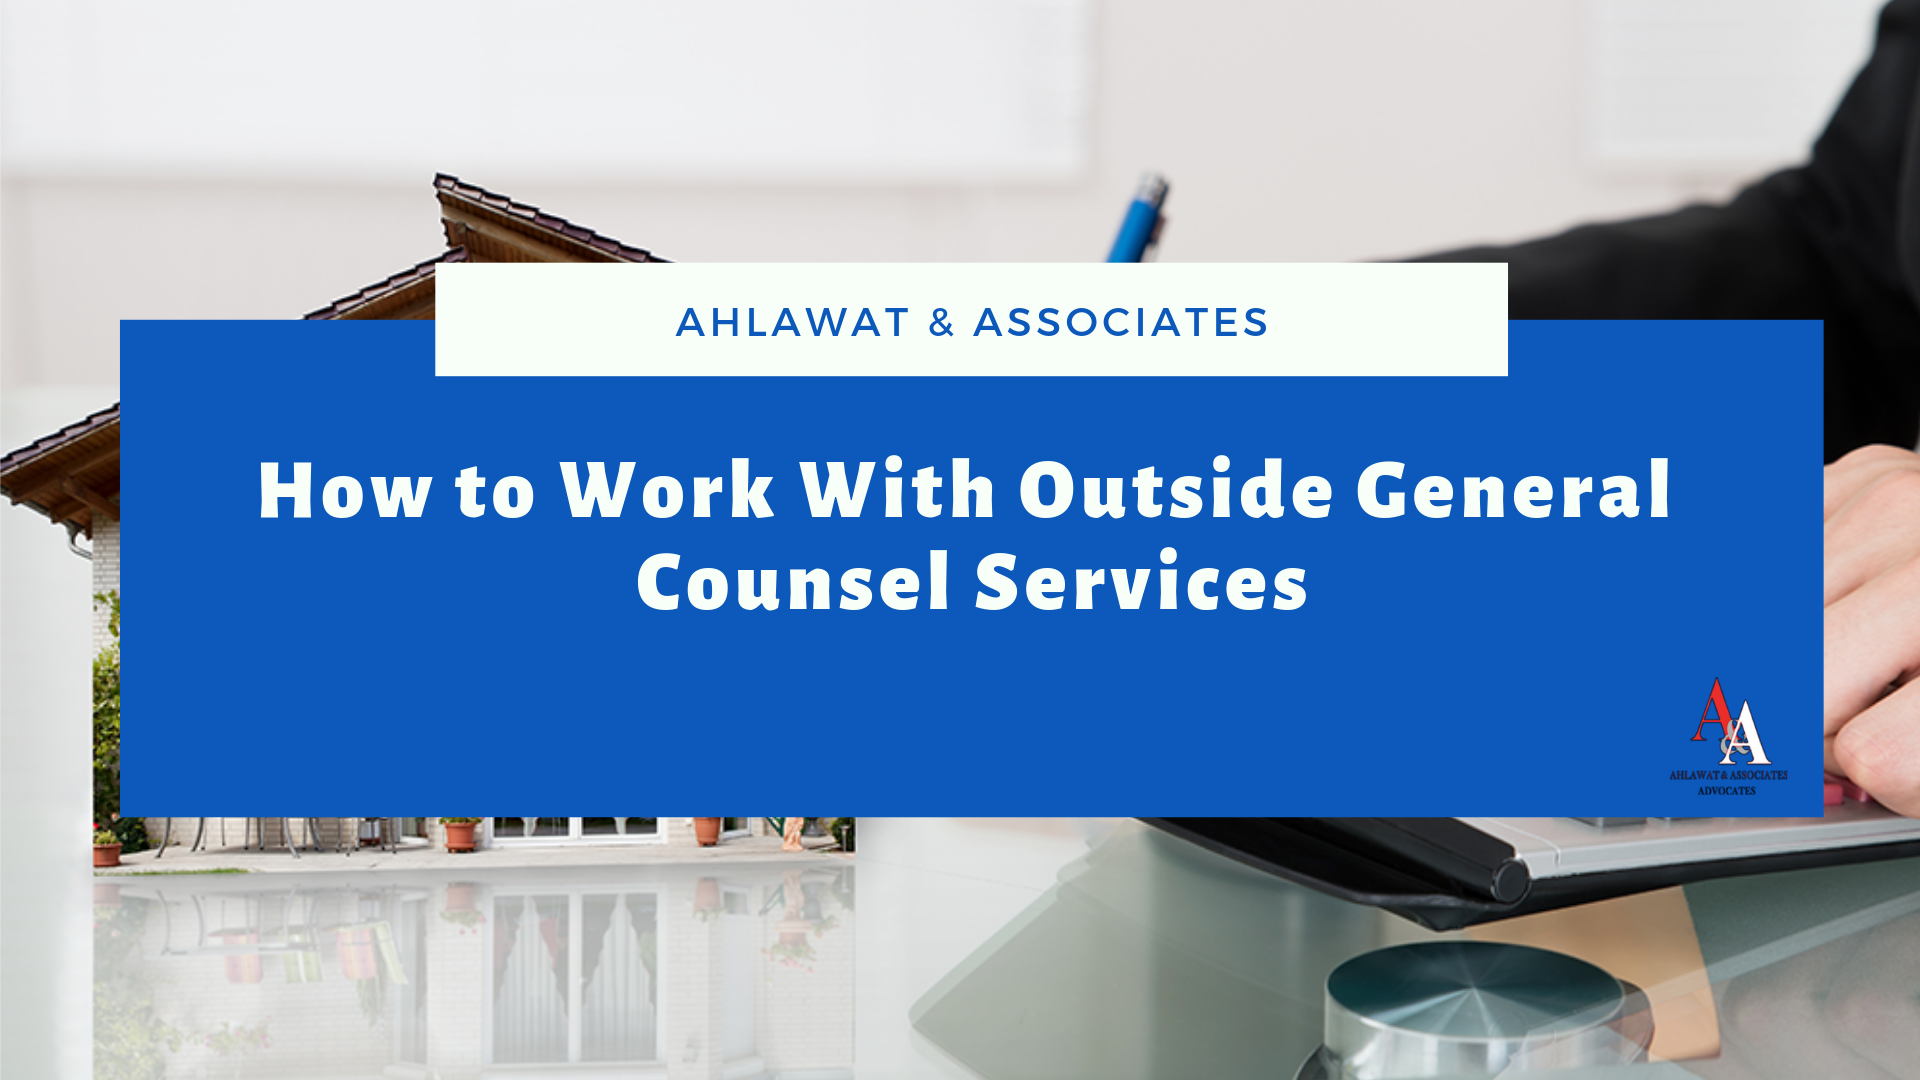 How to Work With Outside General Counsel Services